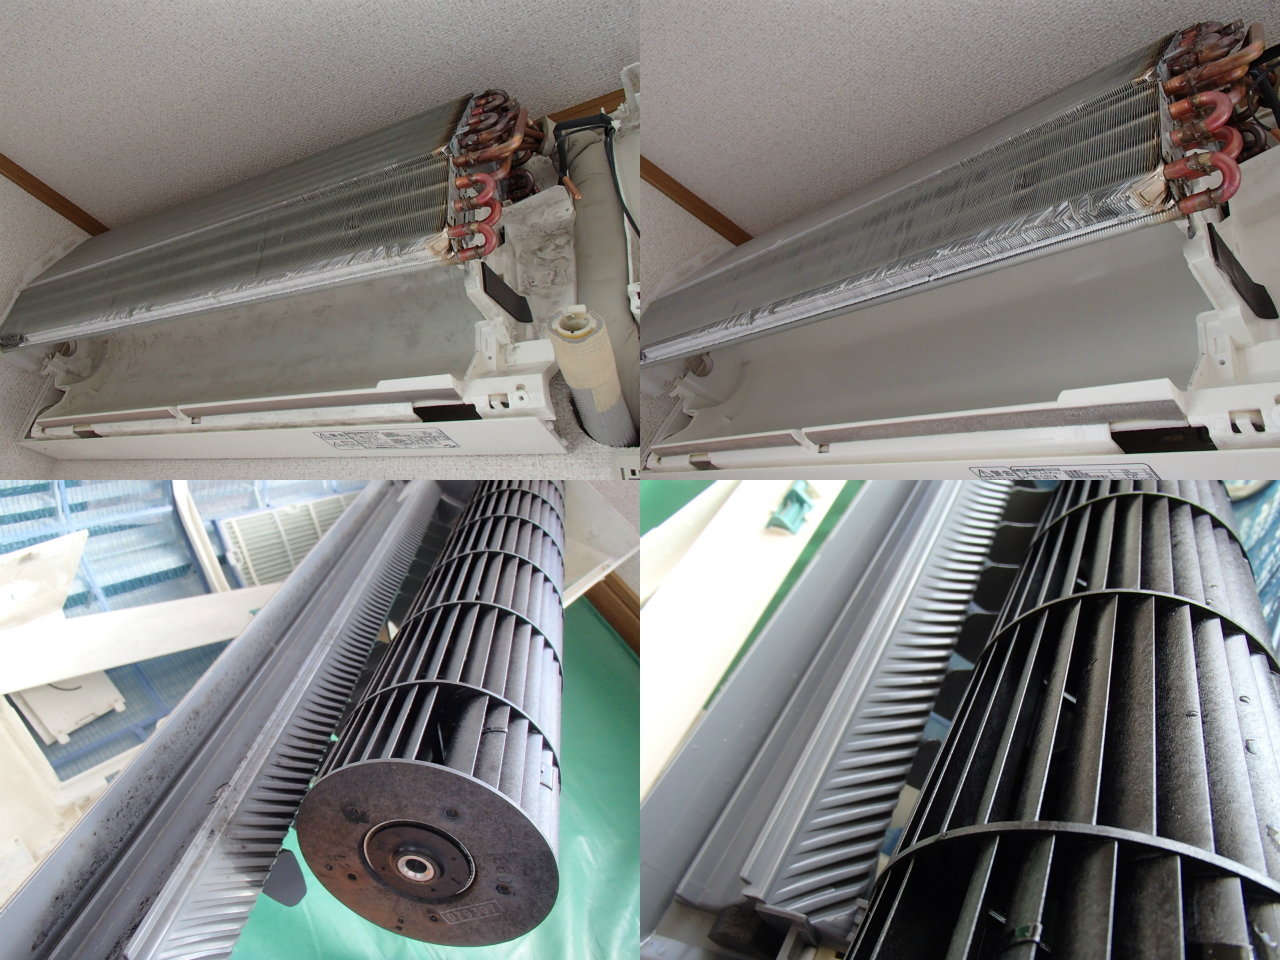 http://ajras.net/images/121012-aircon3.jpg